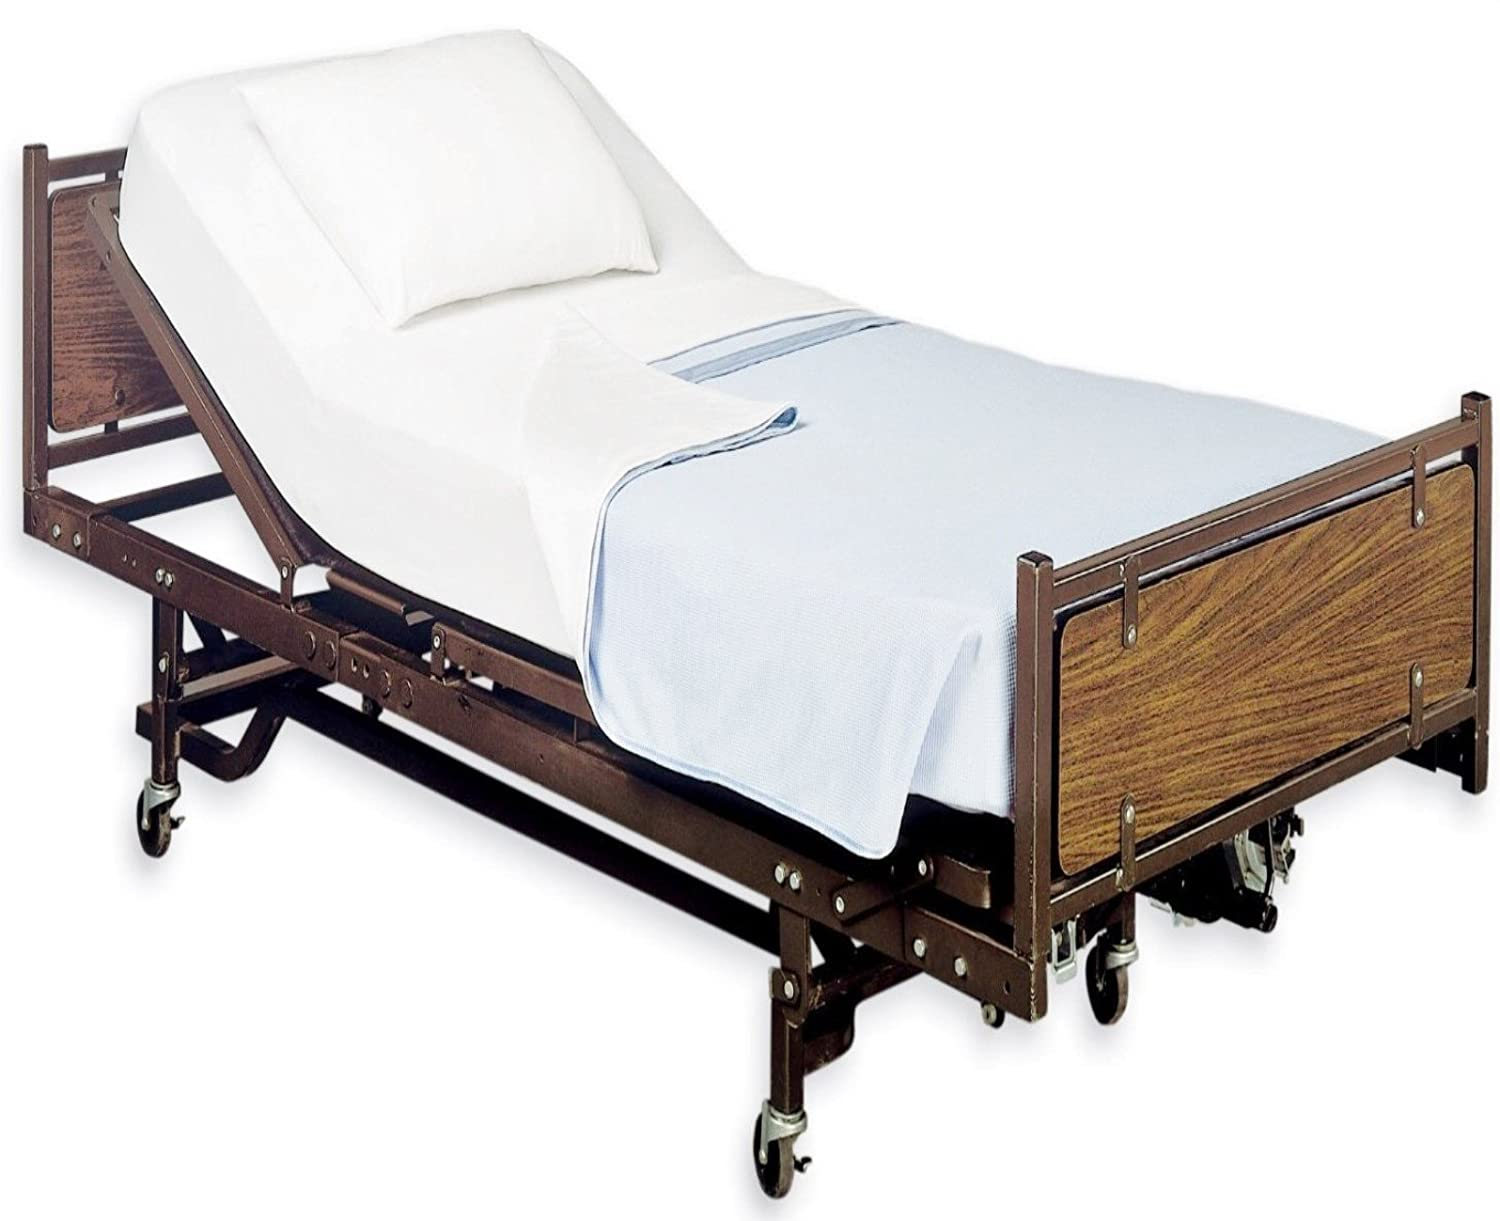 Fitted Hospital Bed Sheets, Soft Knitted Jersey Knit Sheet, 36x84x16 36x84x16 White Classic hbskn